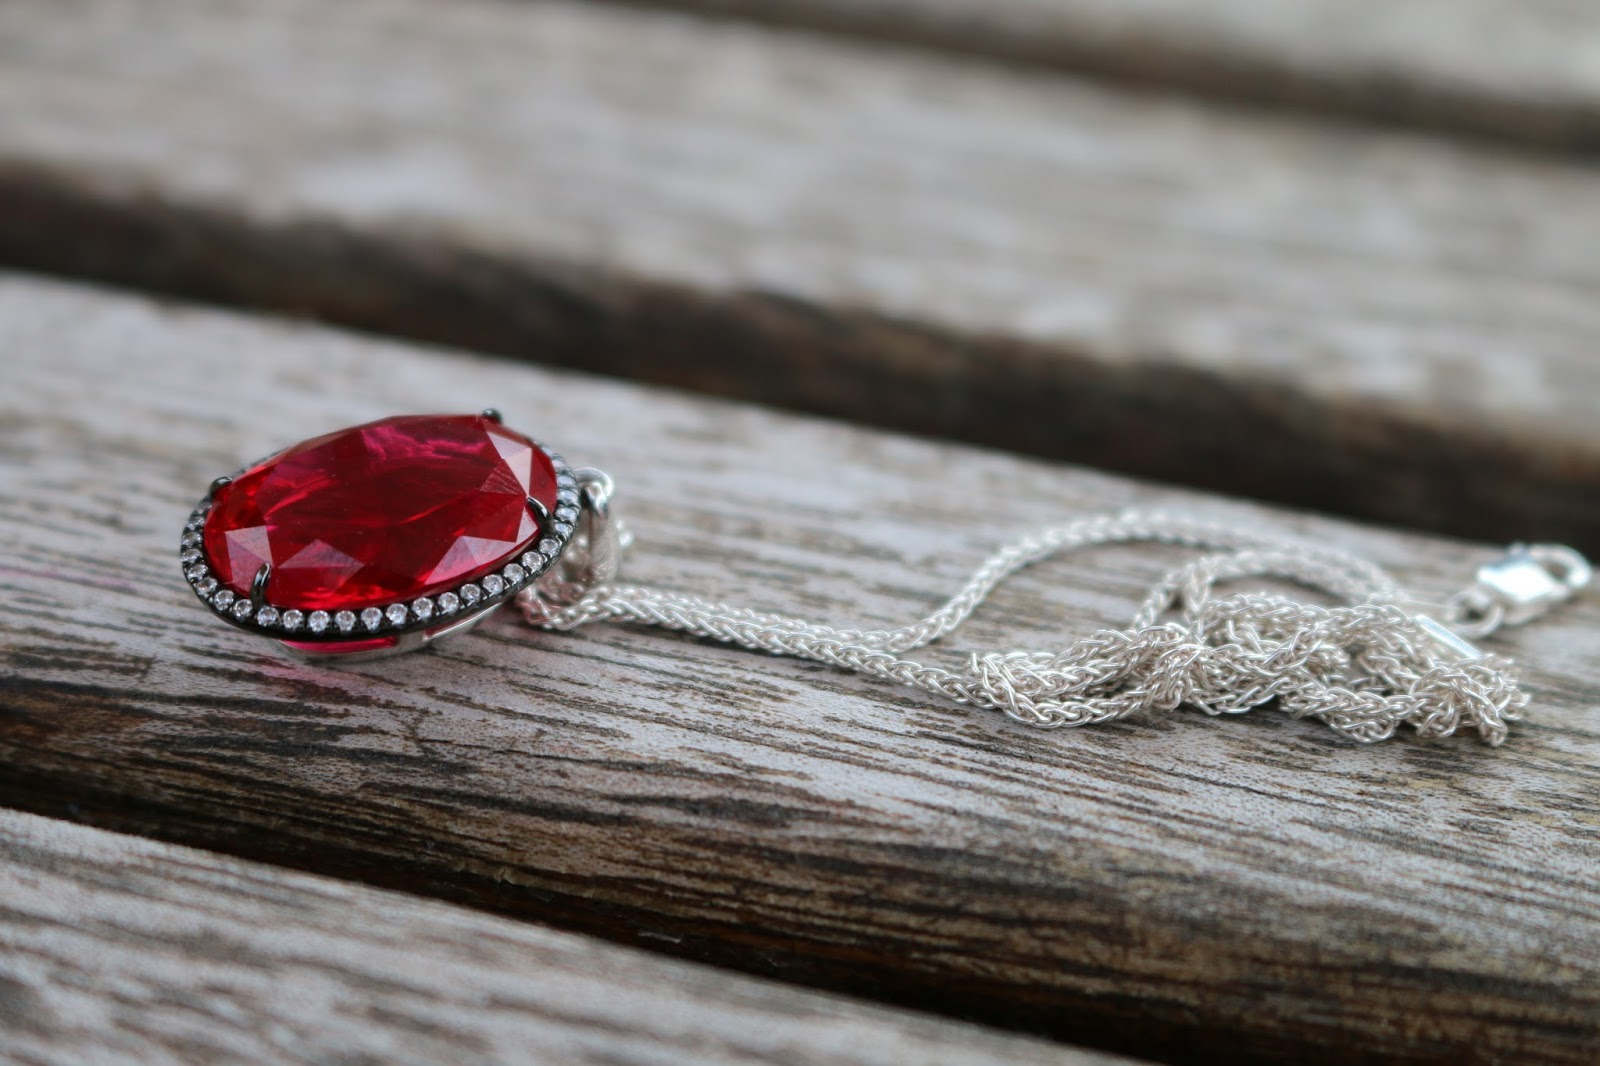 Lauryn Rose Sparkling Creative Ruby Oval Pendant, she might be loved